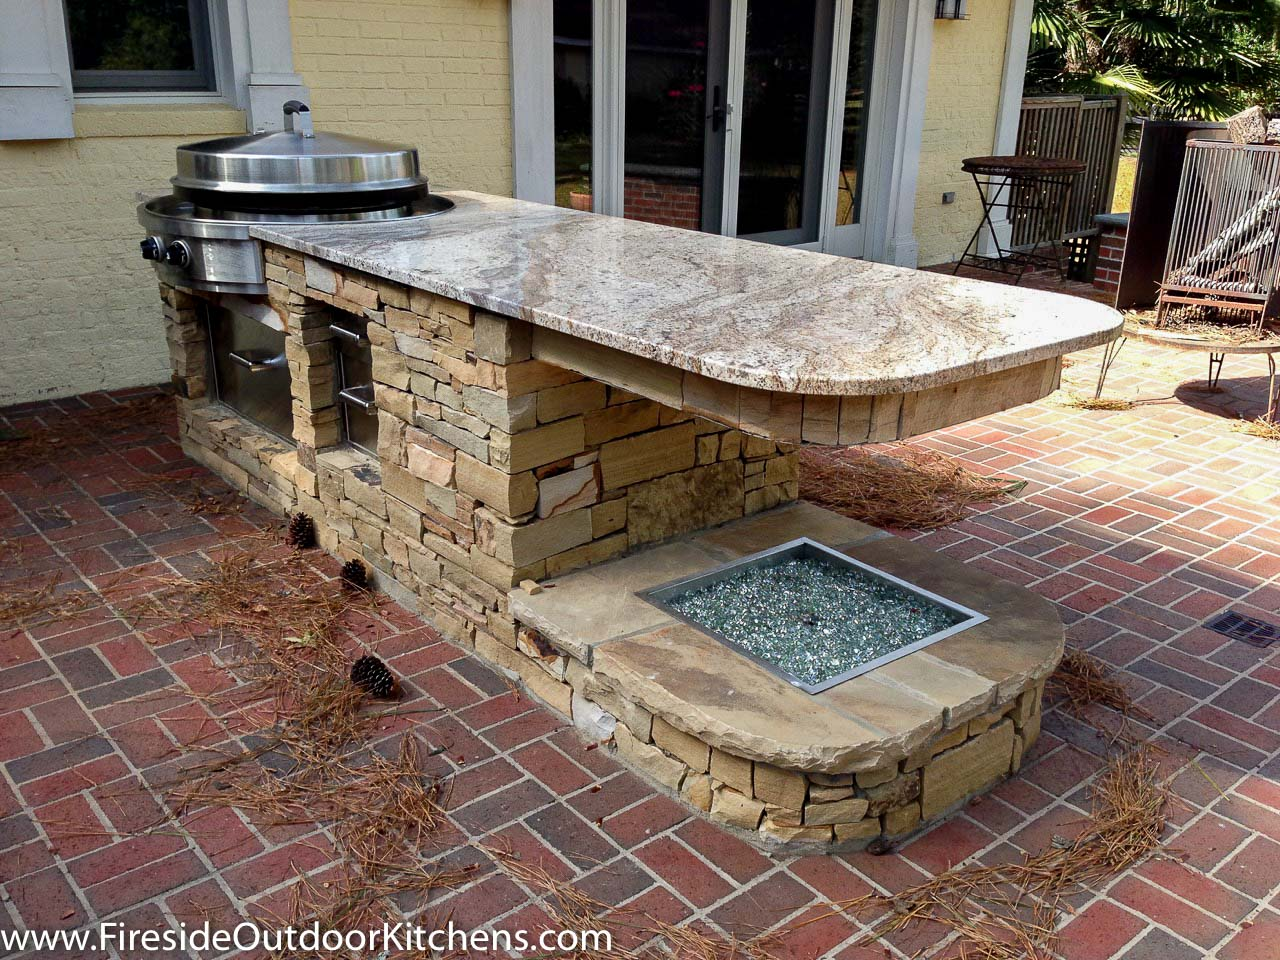 Outdoor Kitchen Pictures And Ideas What Fire Pit Is Right For You Fireside Outdoor Kitchens